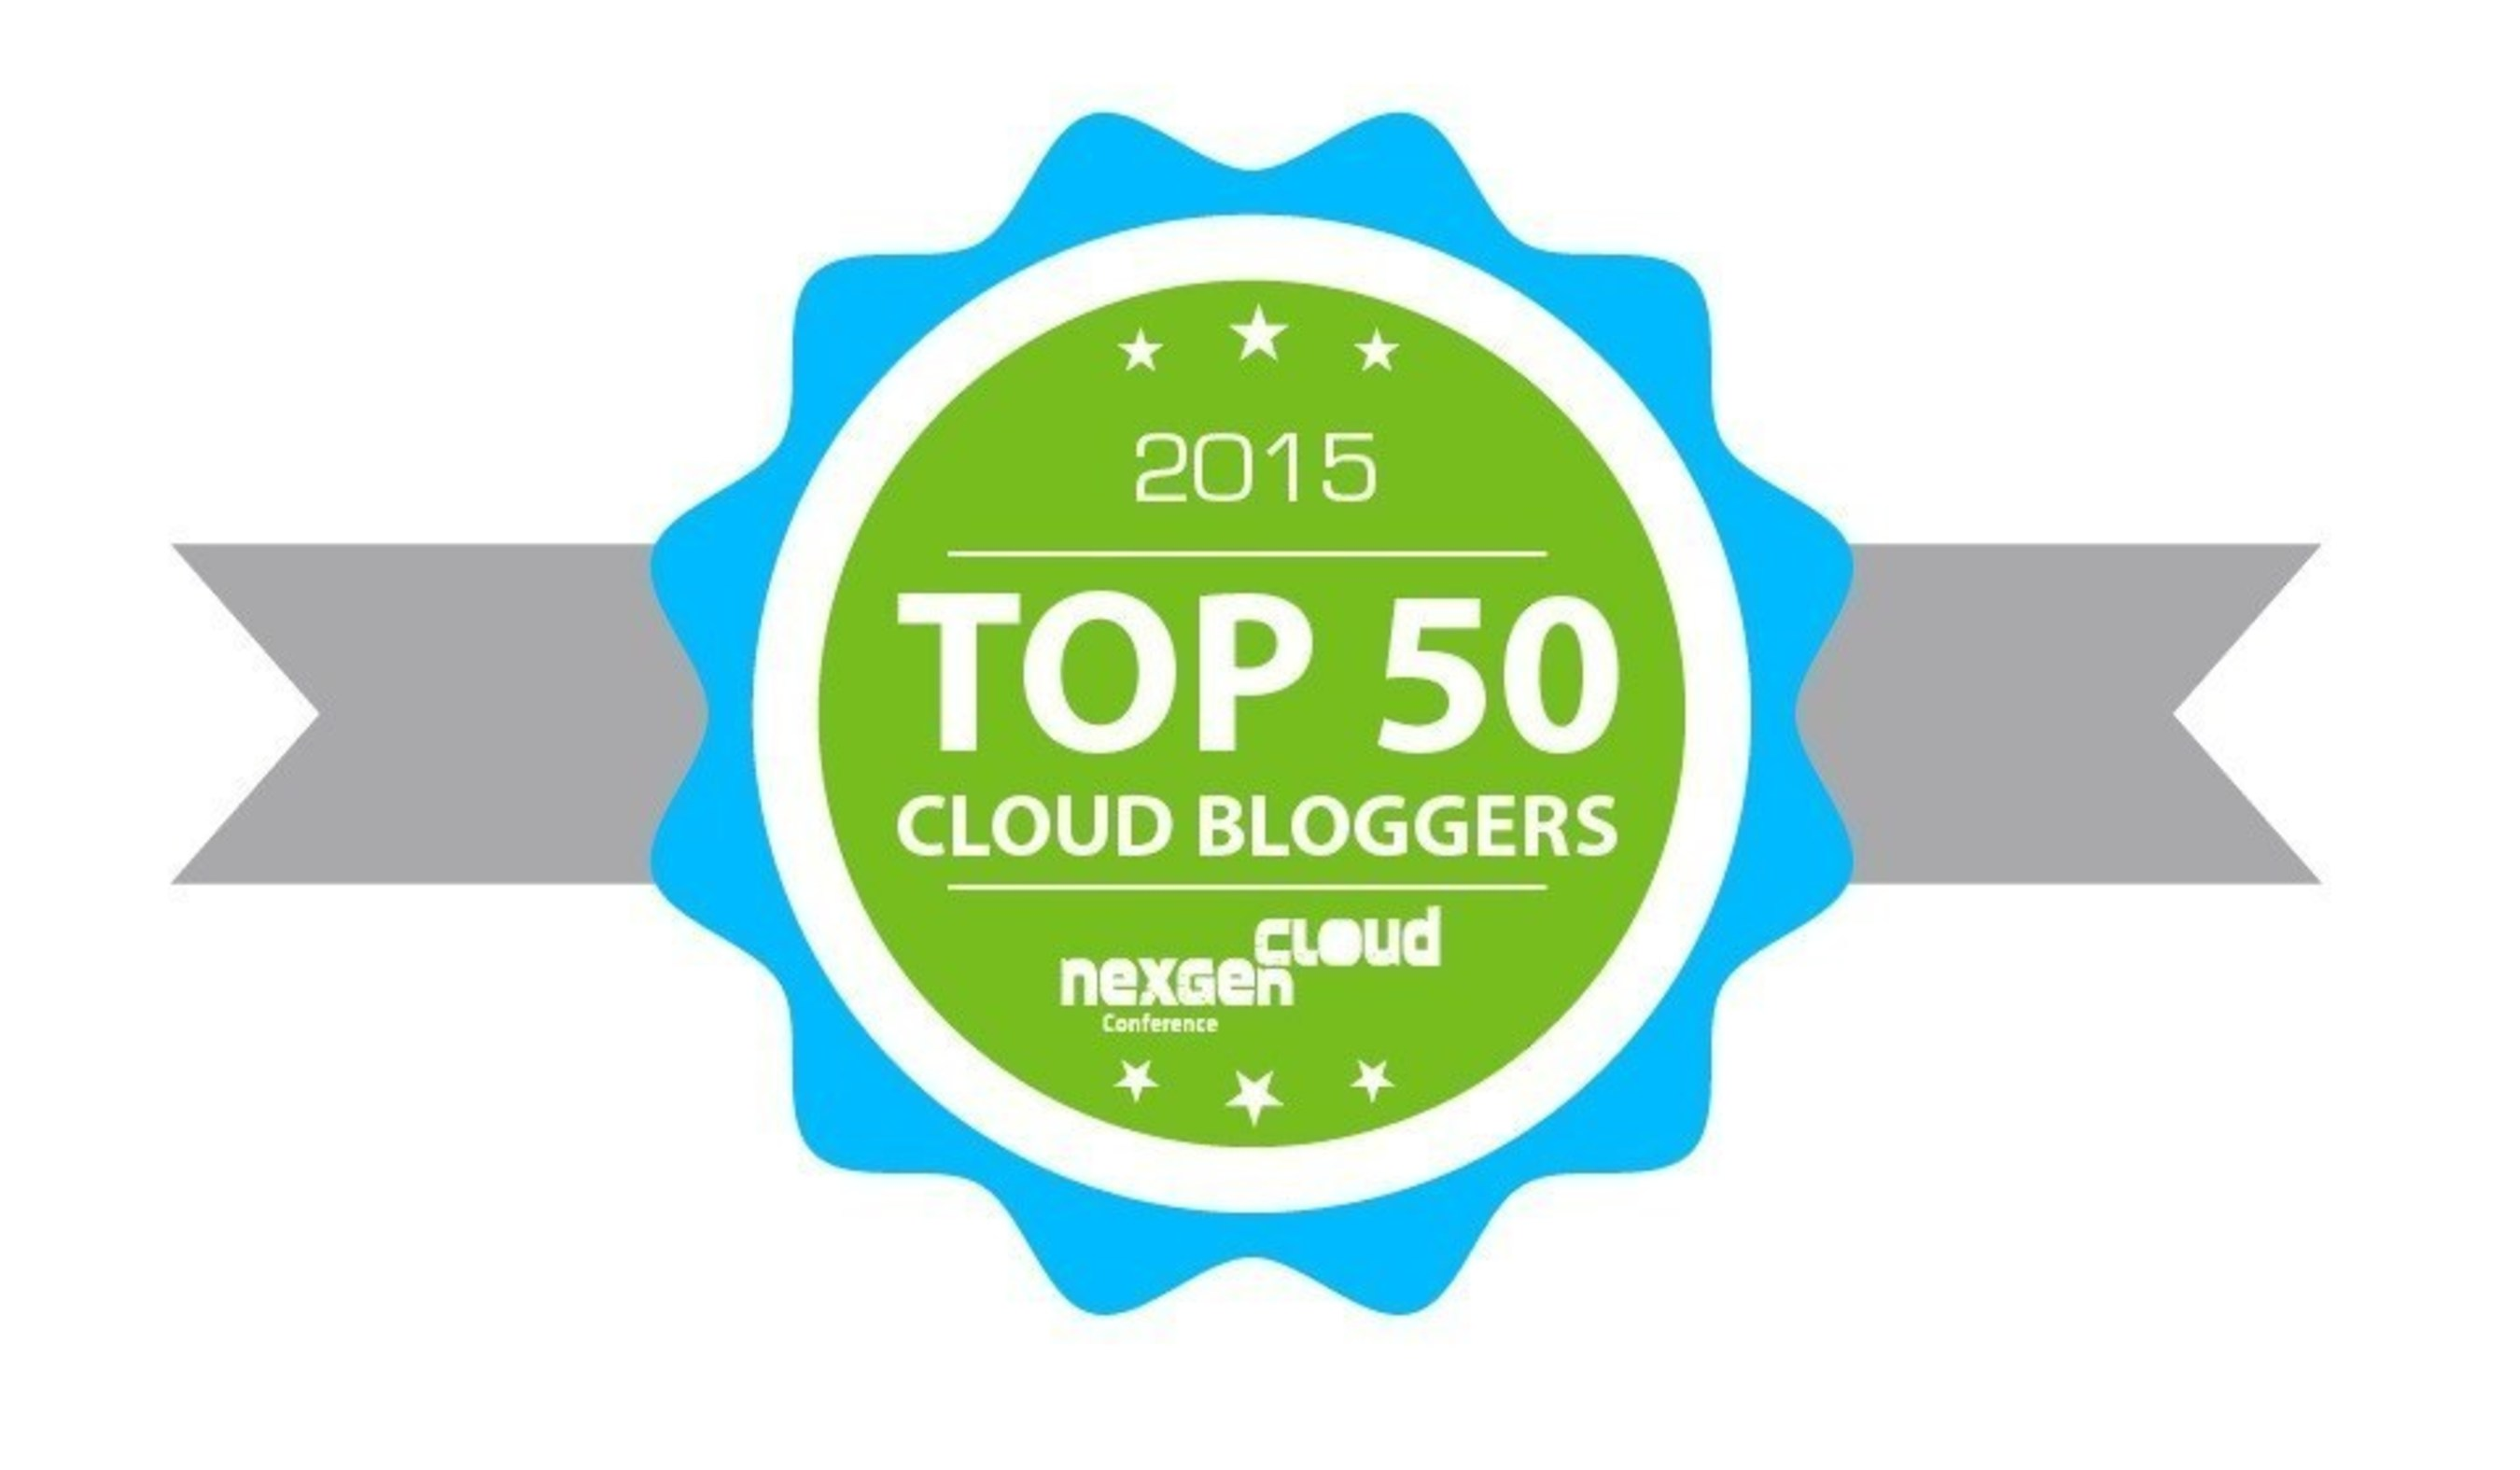 The NexGen Cloud Conference and Expo Announces Top 50 Cloud Bloggers of 2015